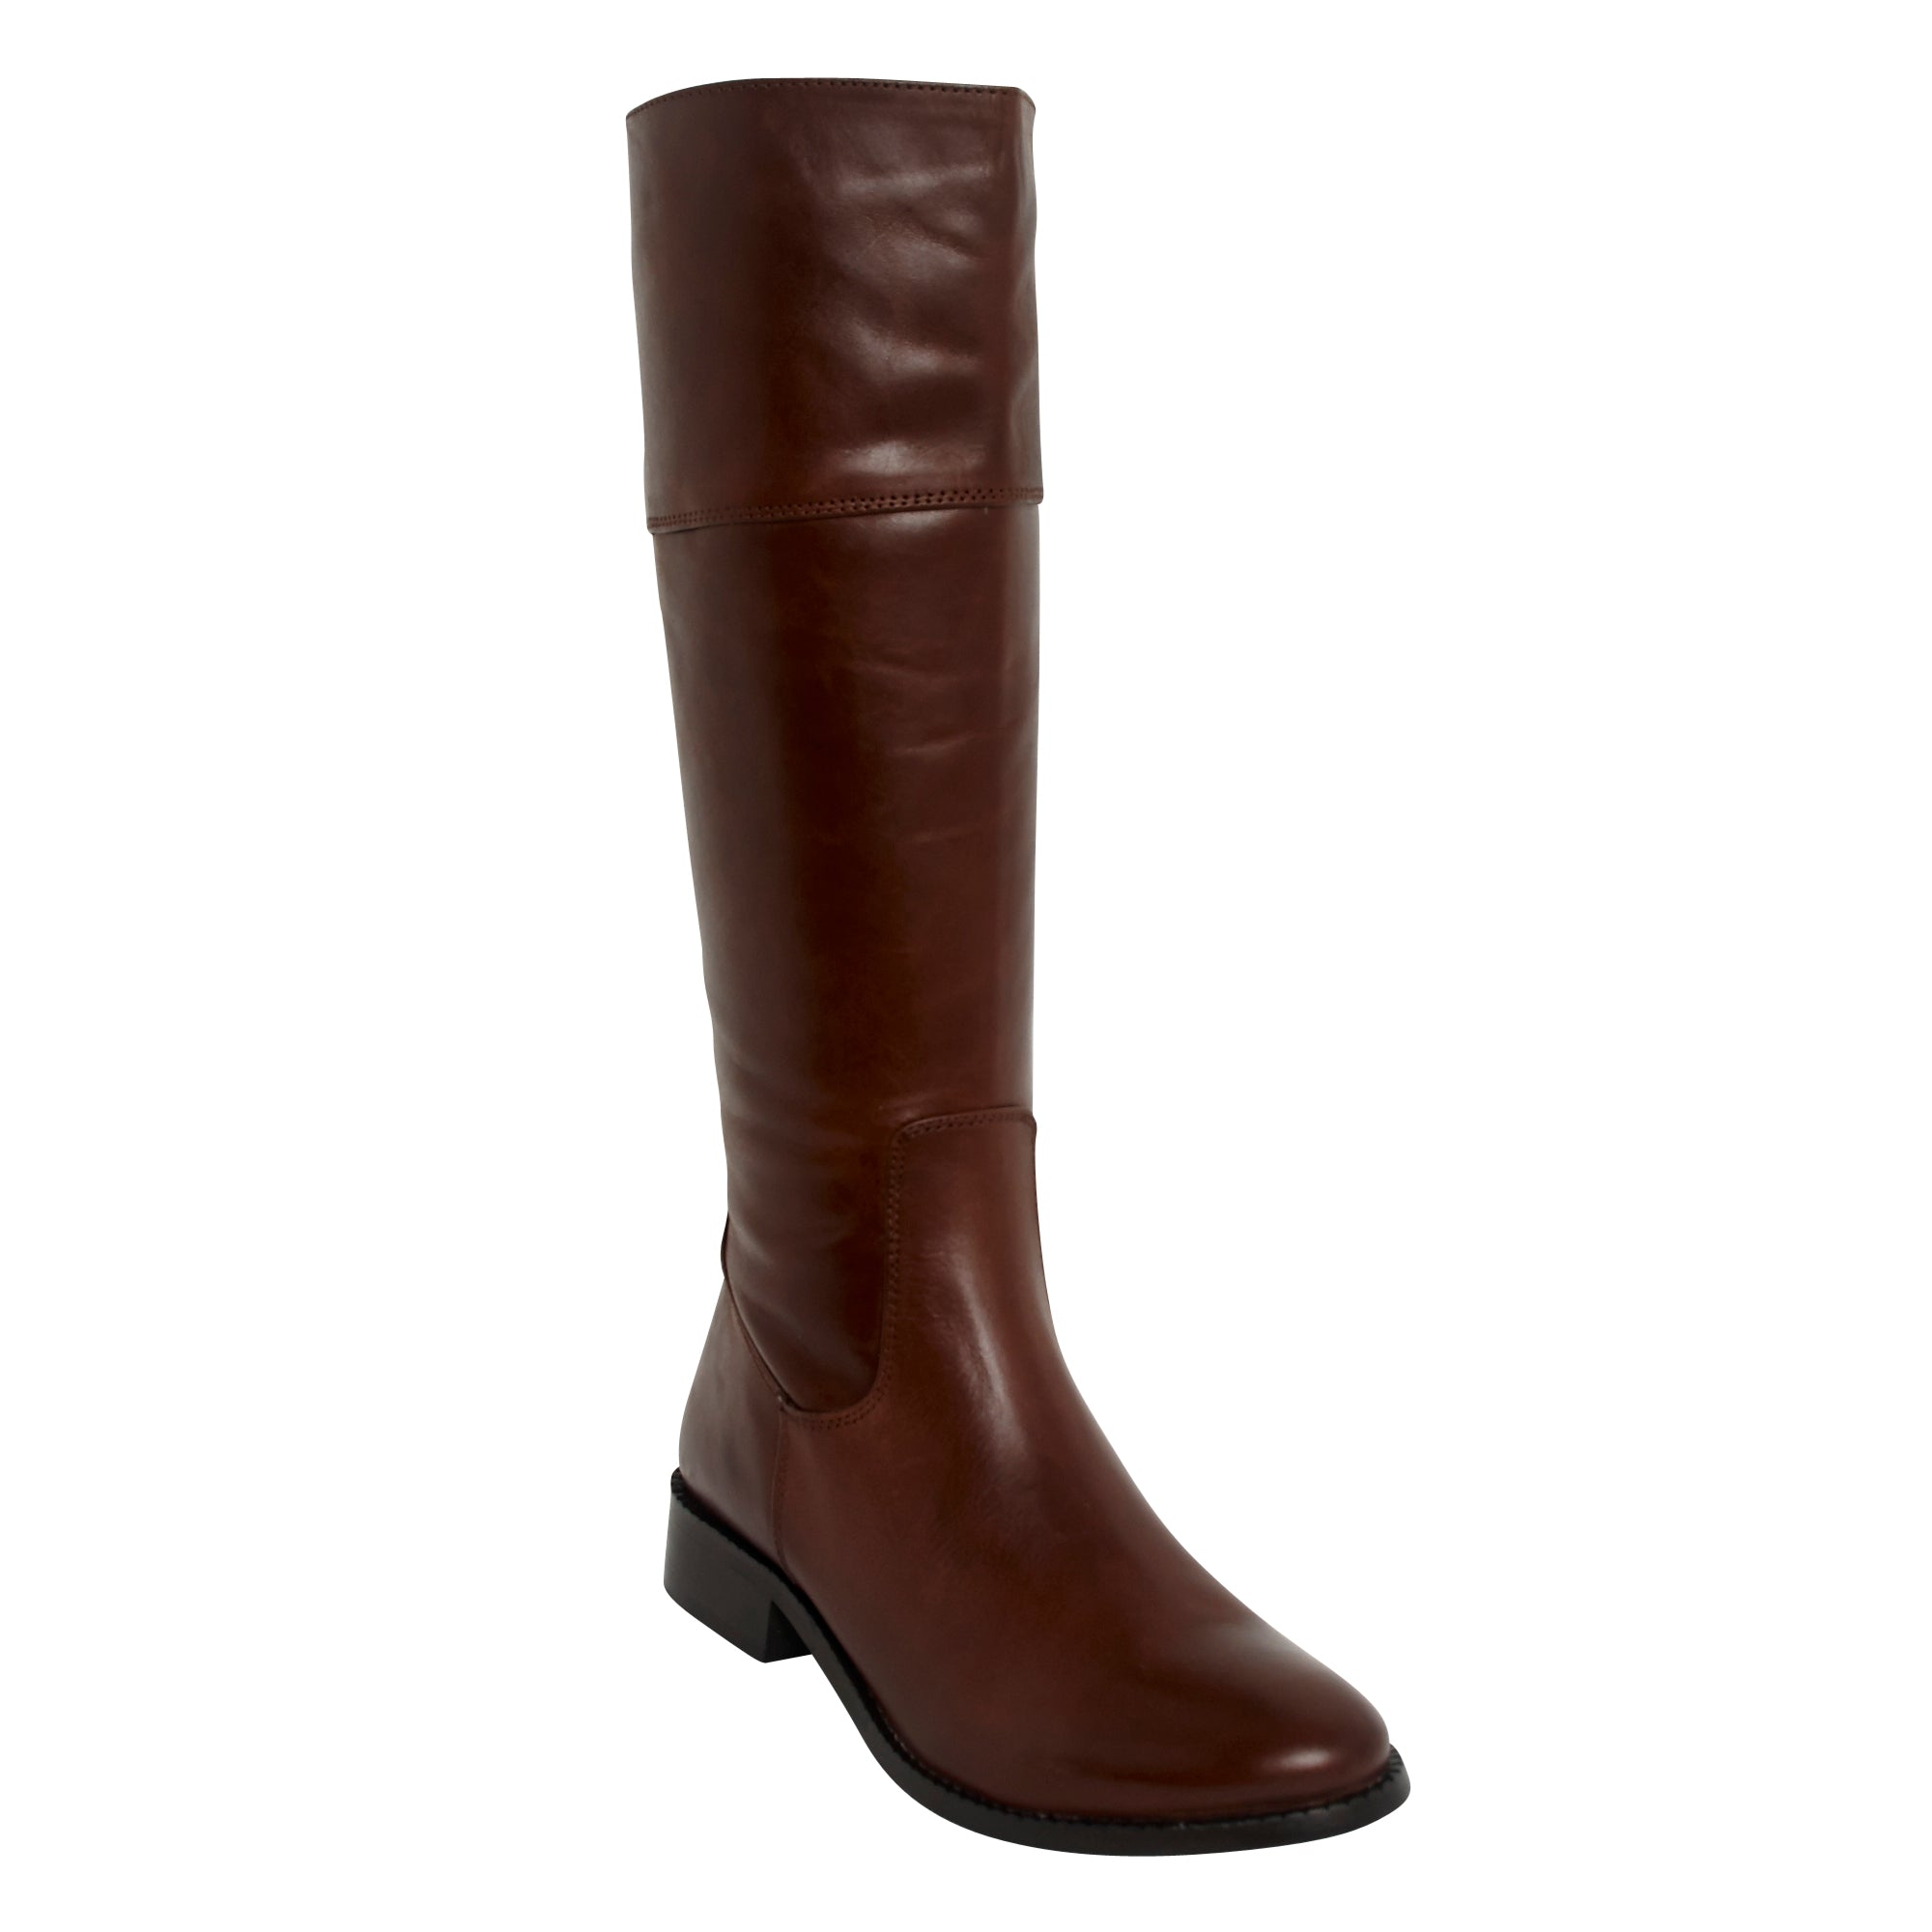 Ladies Long Boots - 26484 Brown